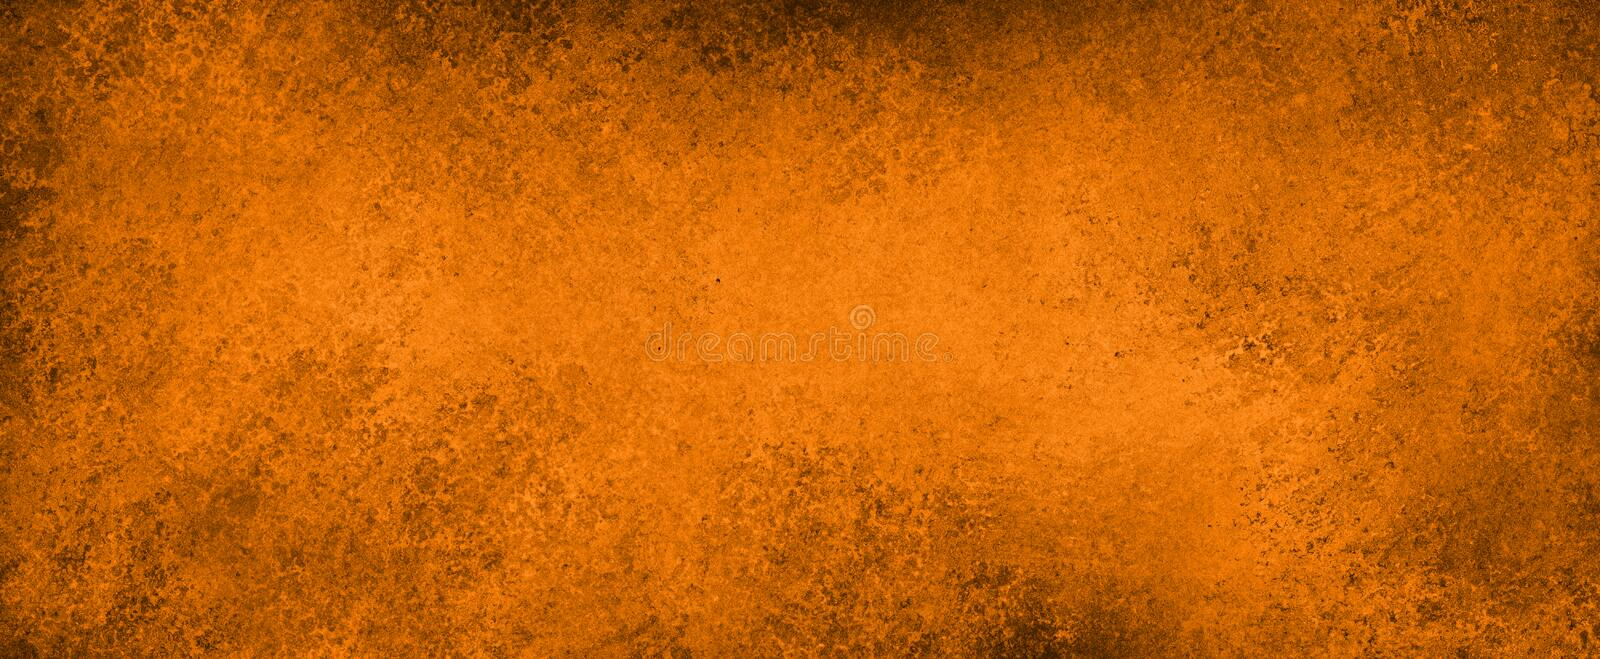 Black and orange background with grunge texture, old distressed vintage halloween or autumn background royalty free illustration